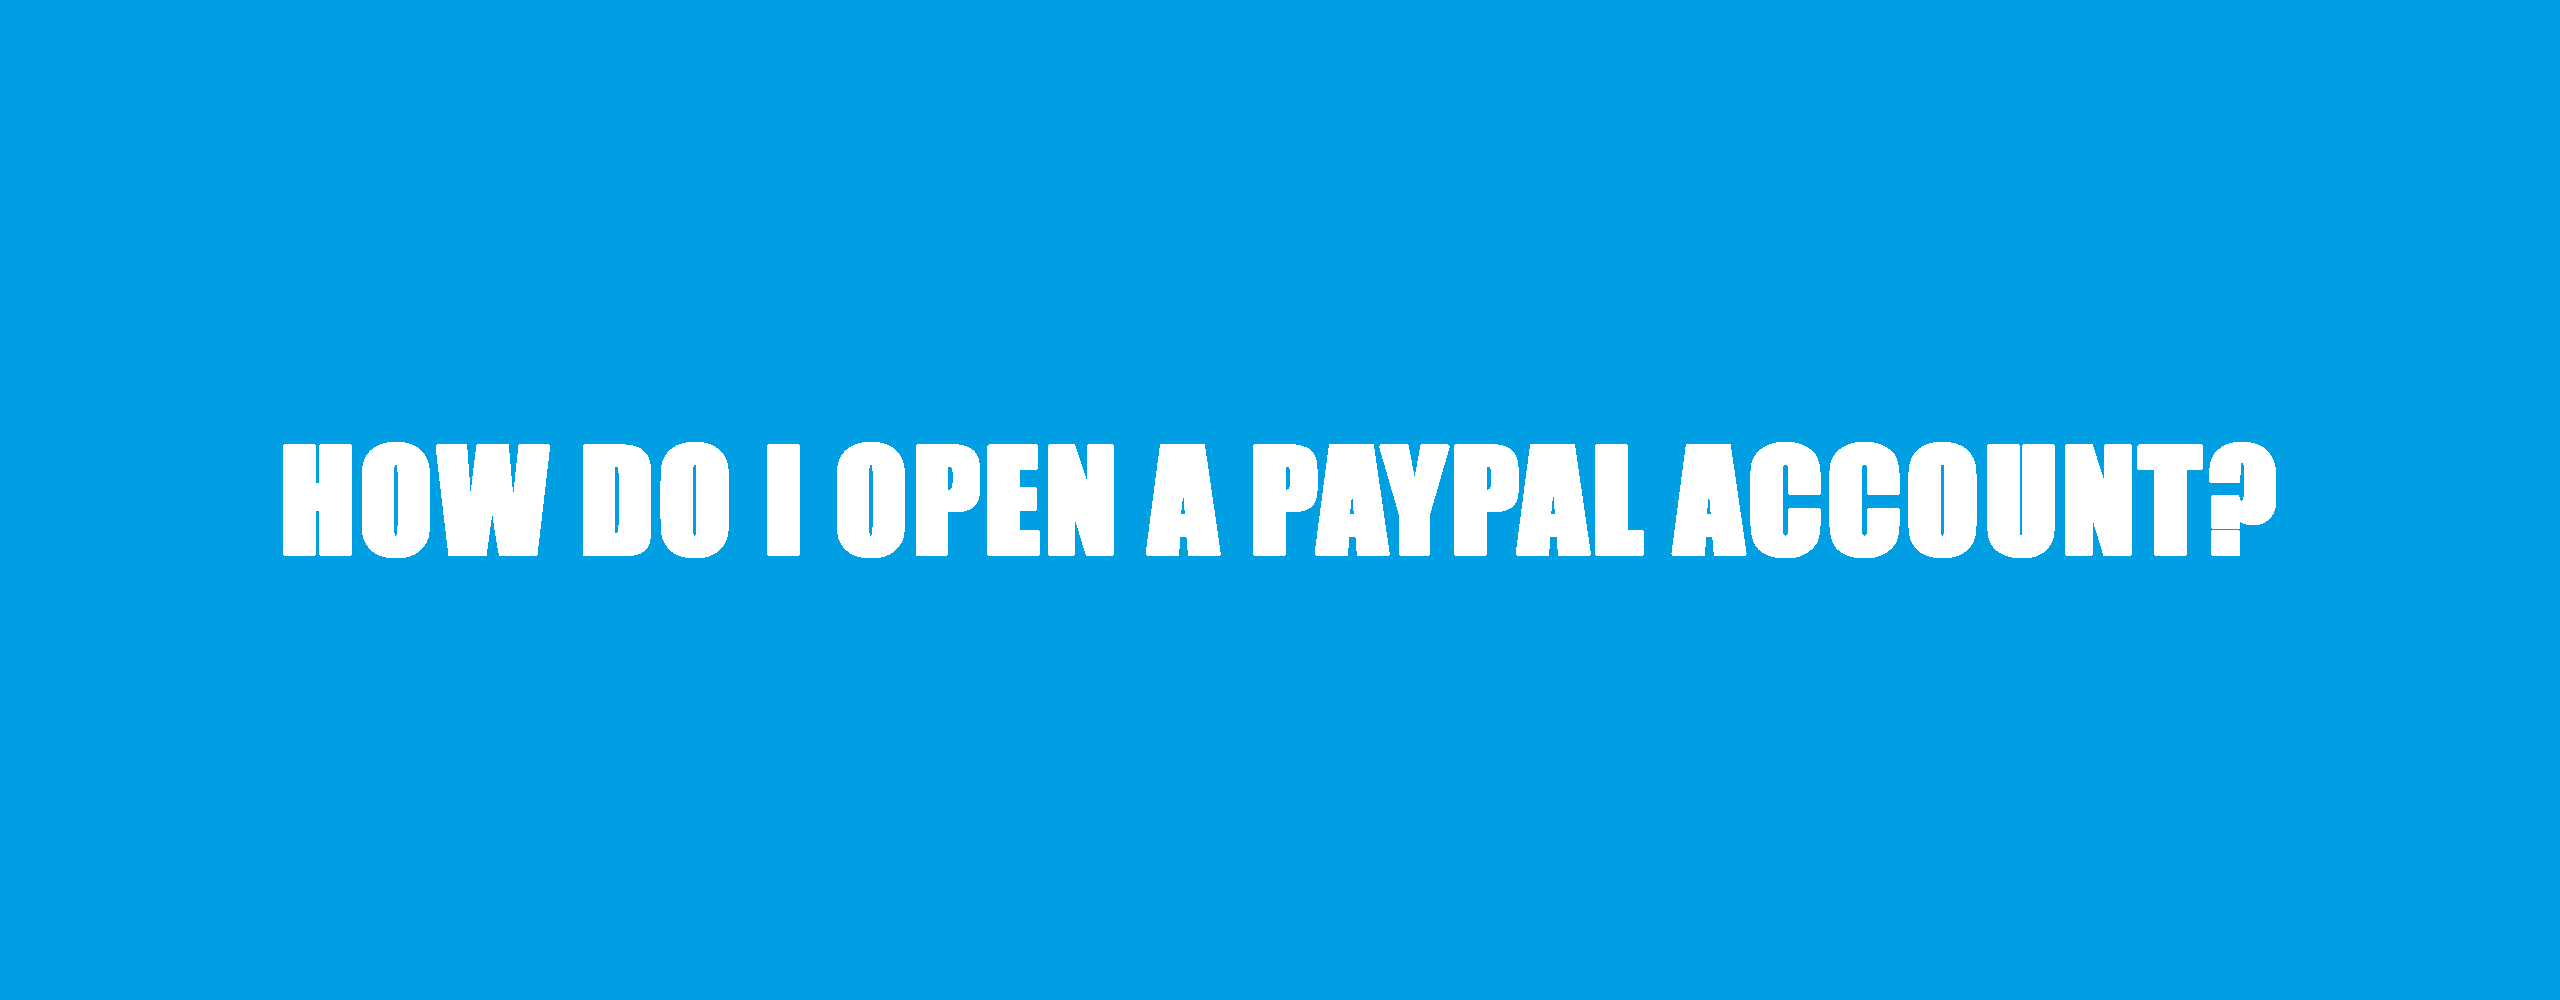 How do I open a PayPal account